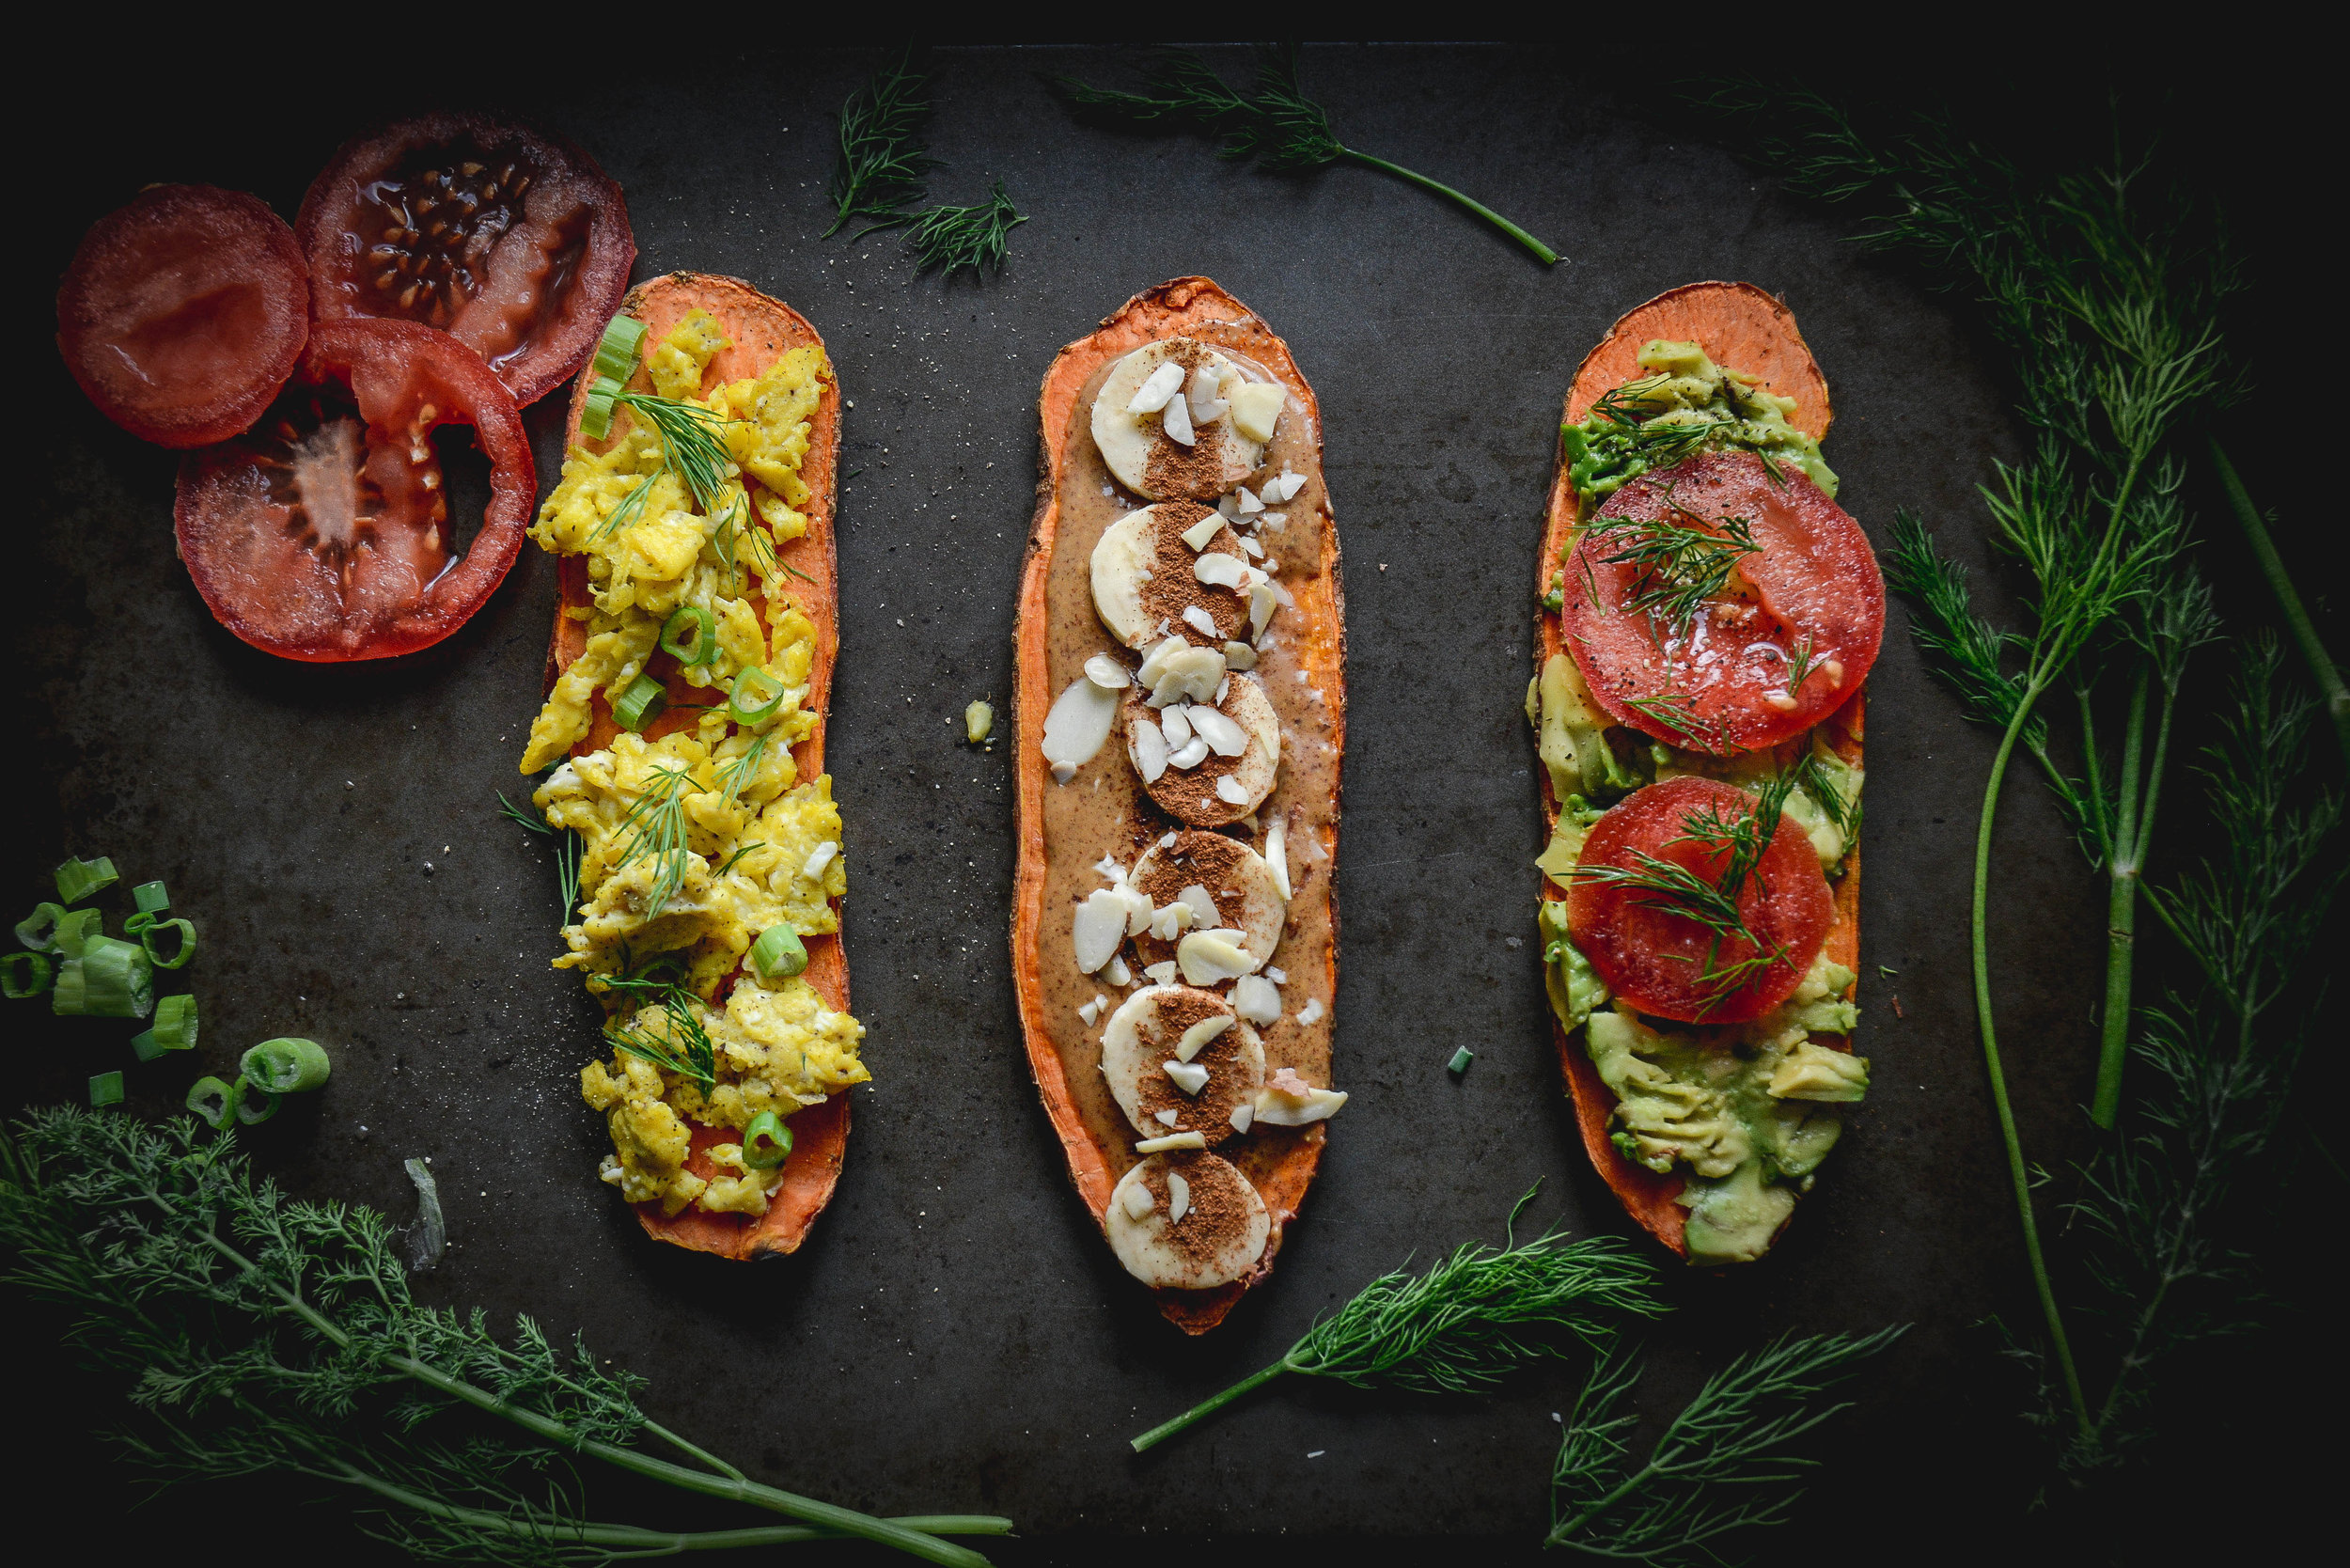 sweet potato toast with egg, one with almond butter and one with avocado